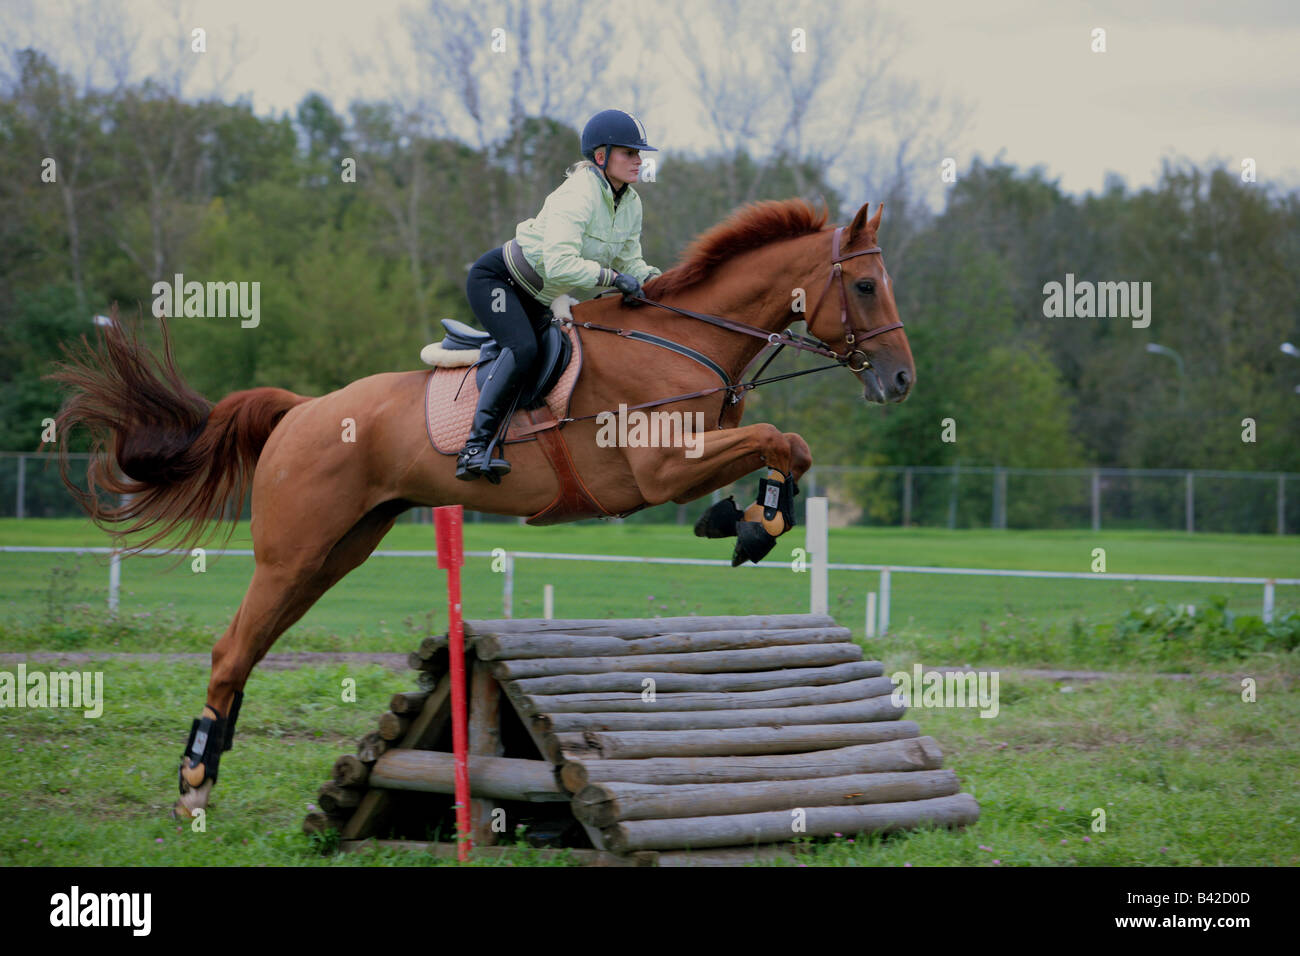 Equestrian  jumping fence three day event competition - Stock Image